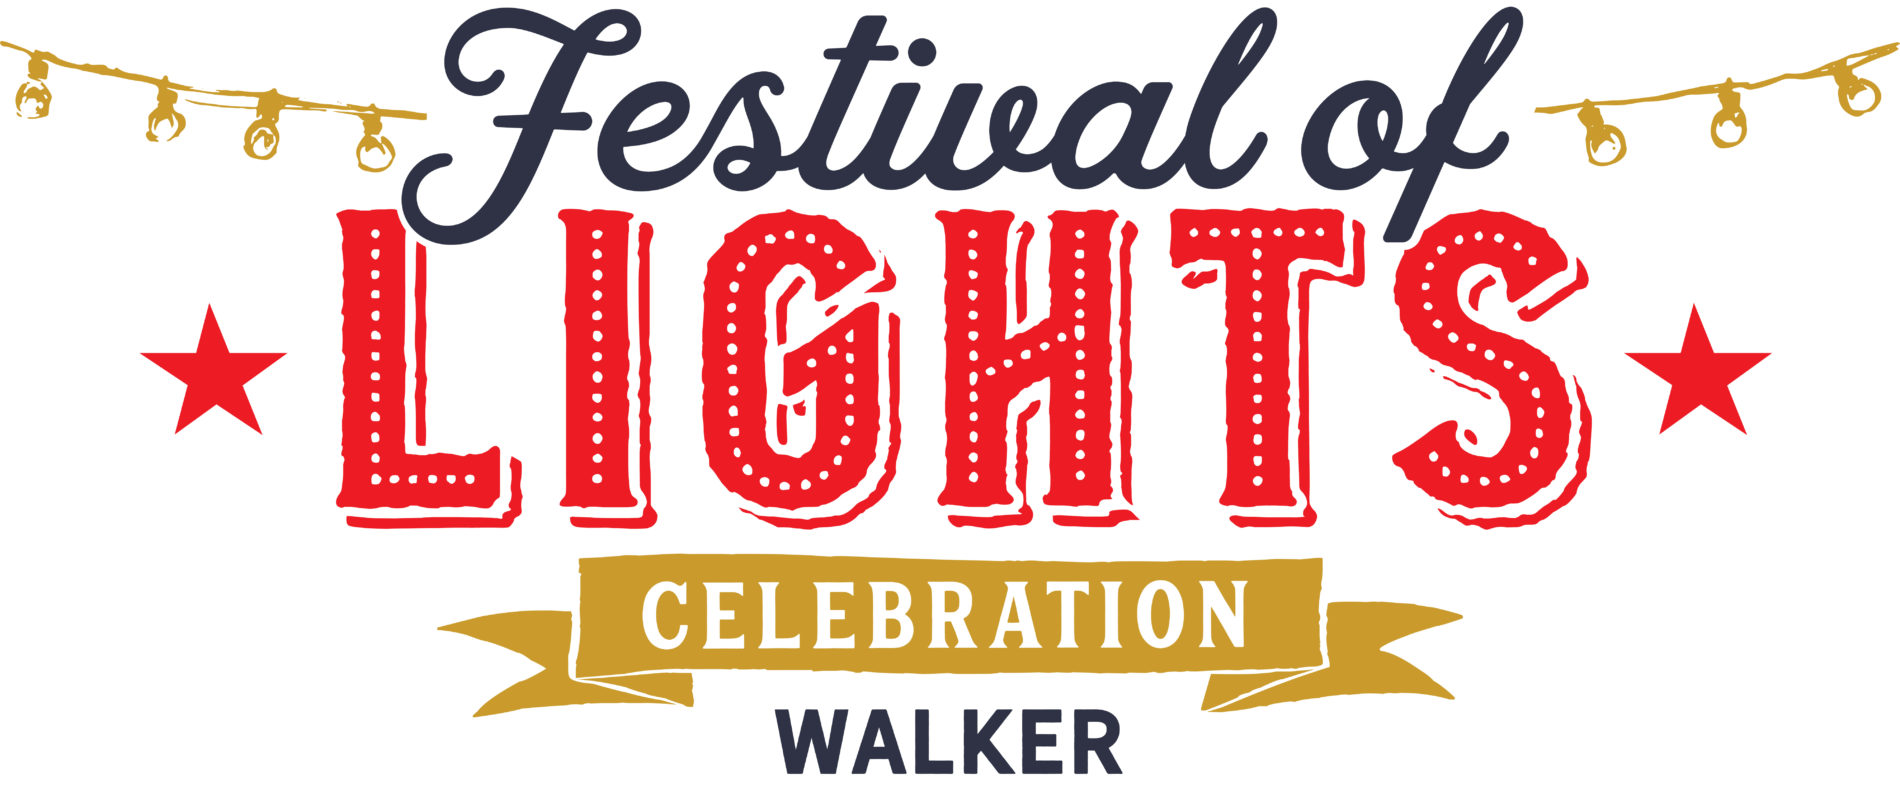 Walker celebration festival of lights